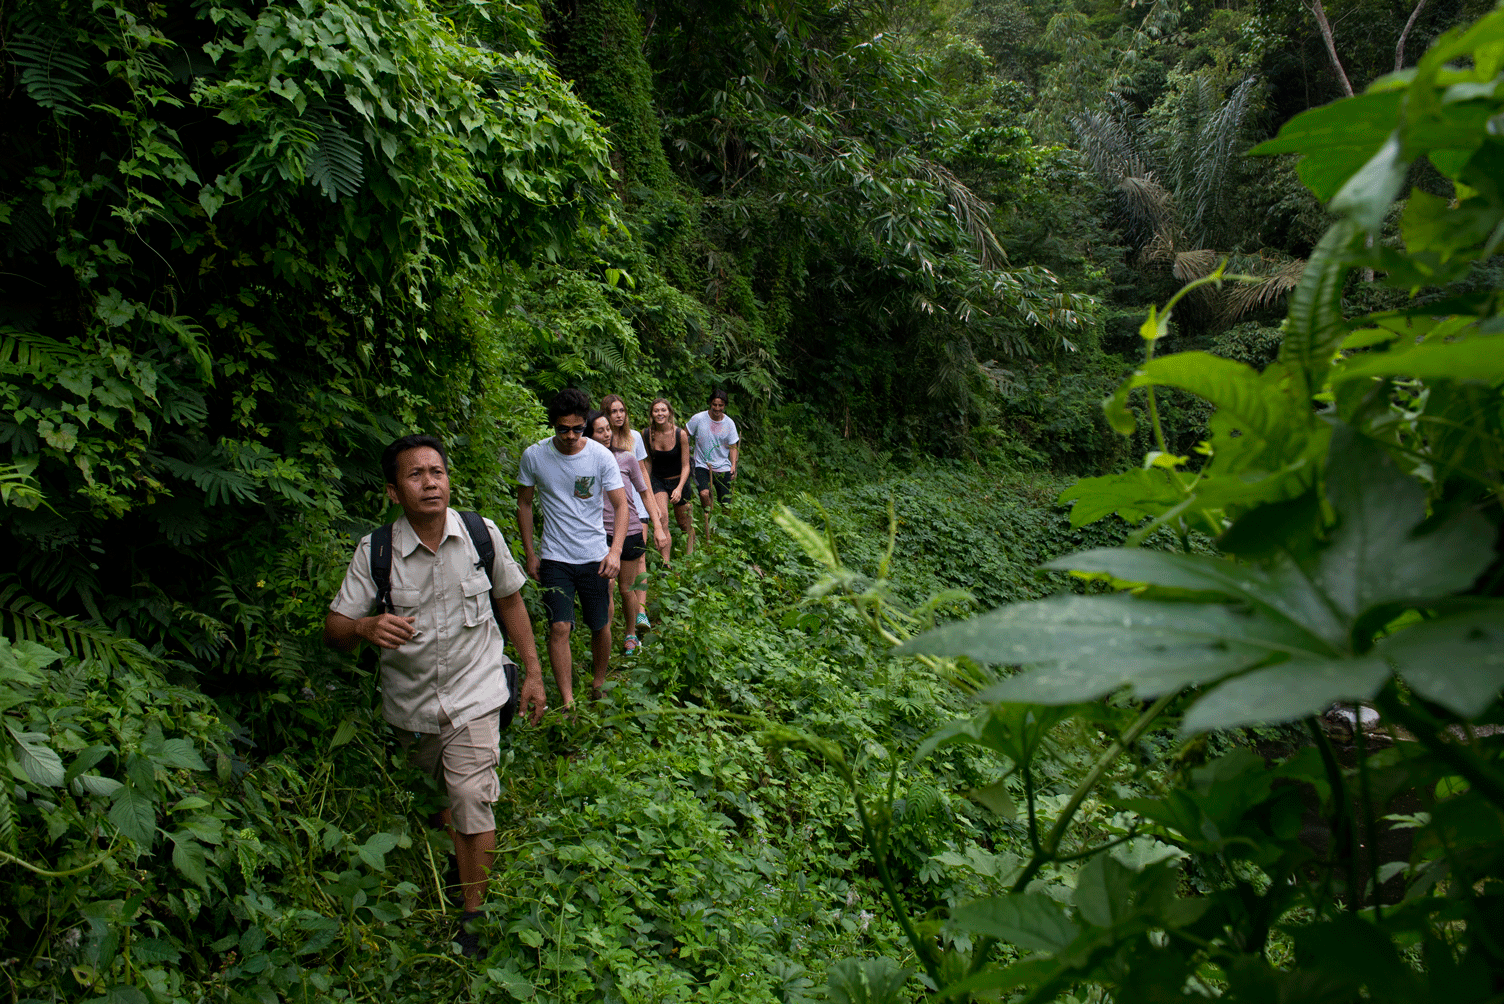 Off the Beaten Track for Some Tropical Trekking - Bali Trekking